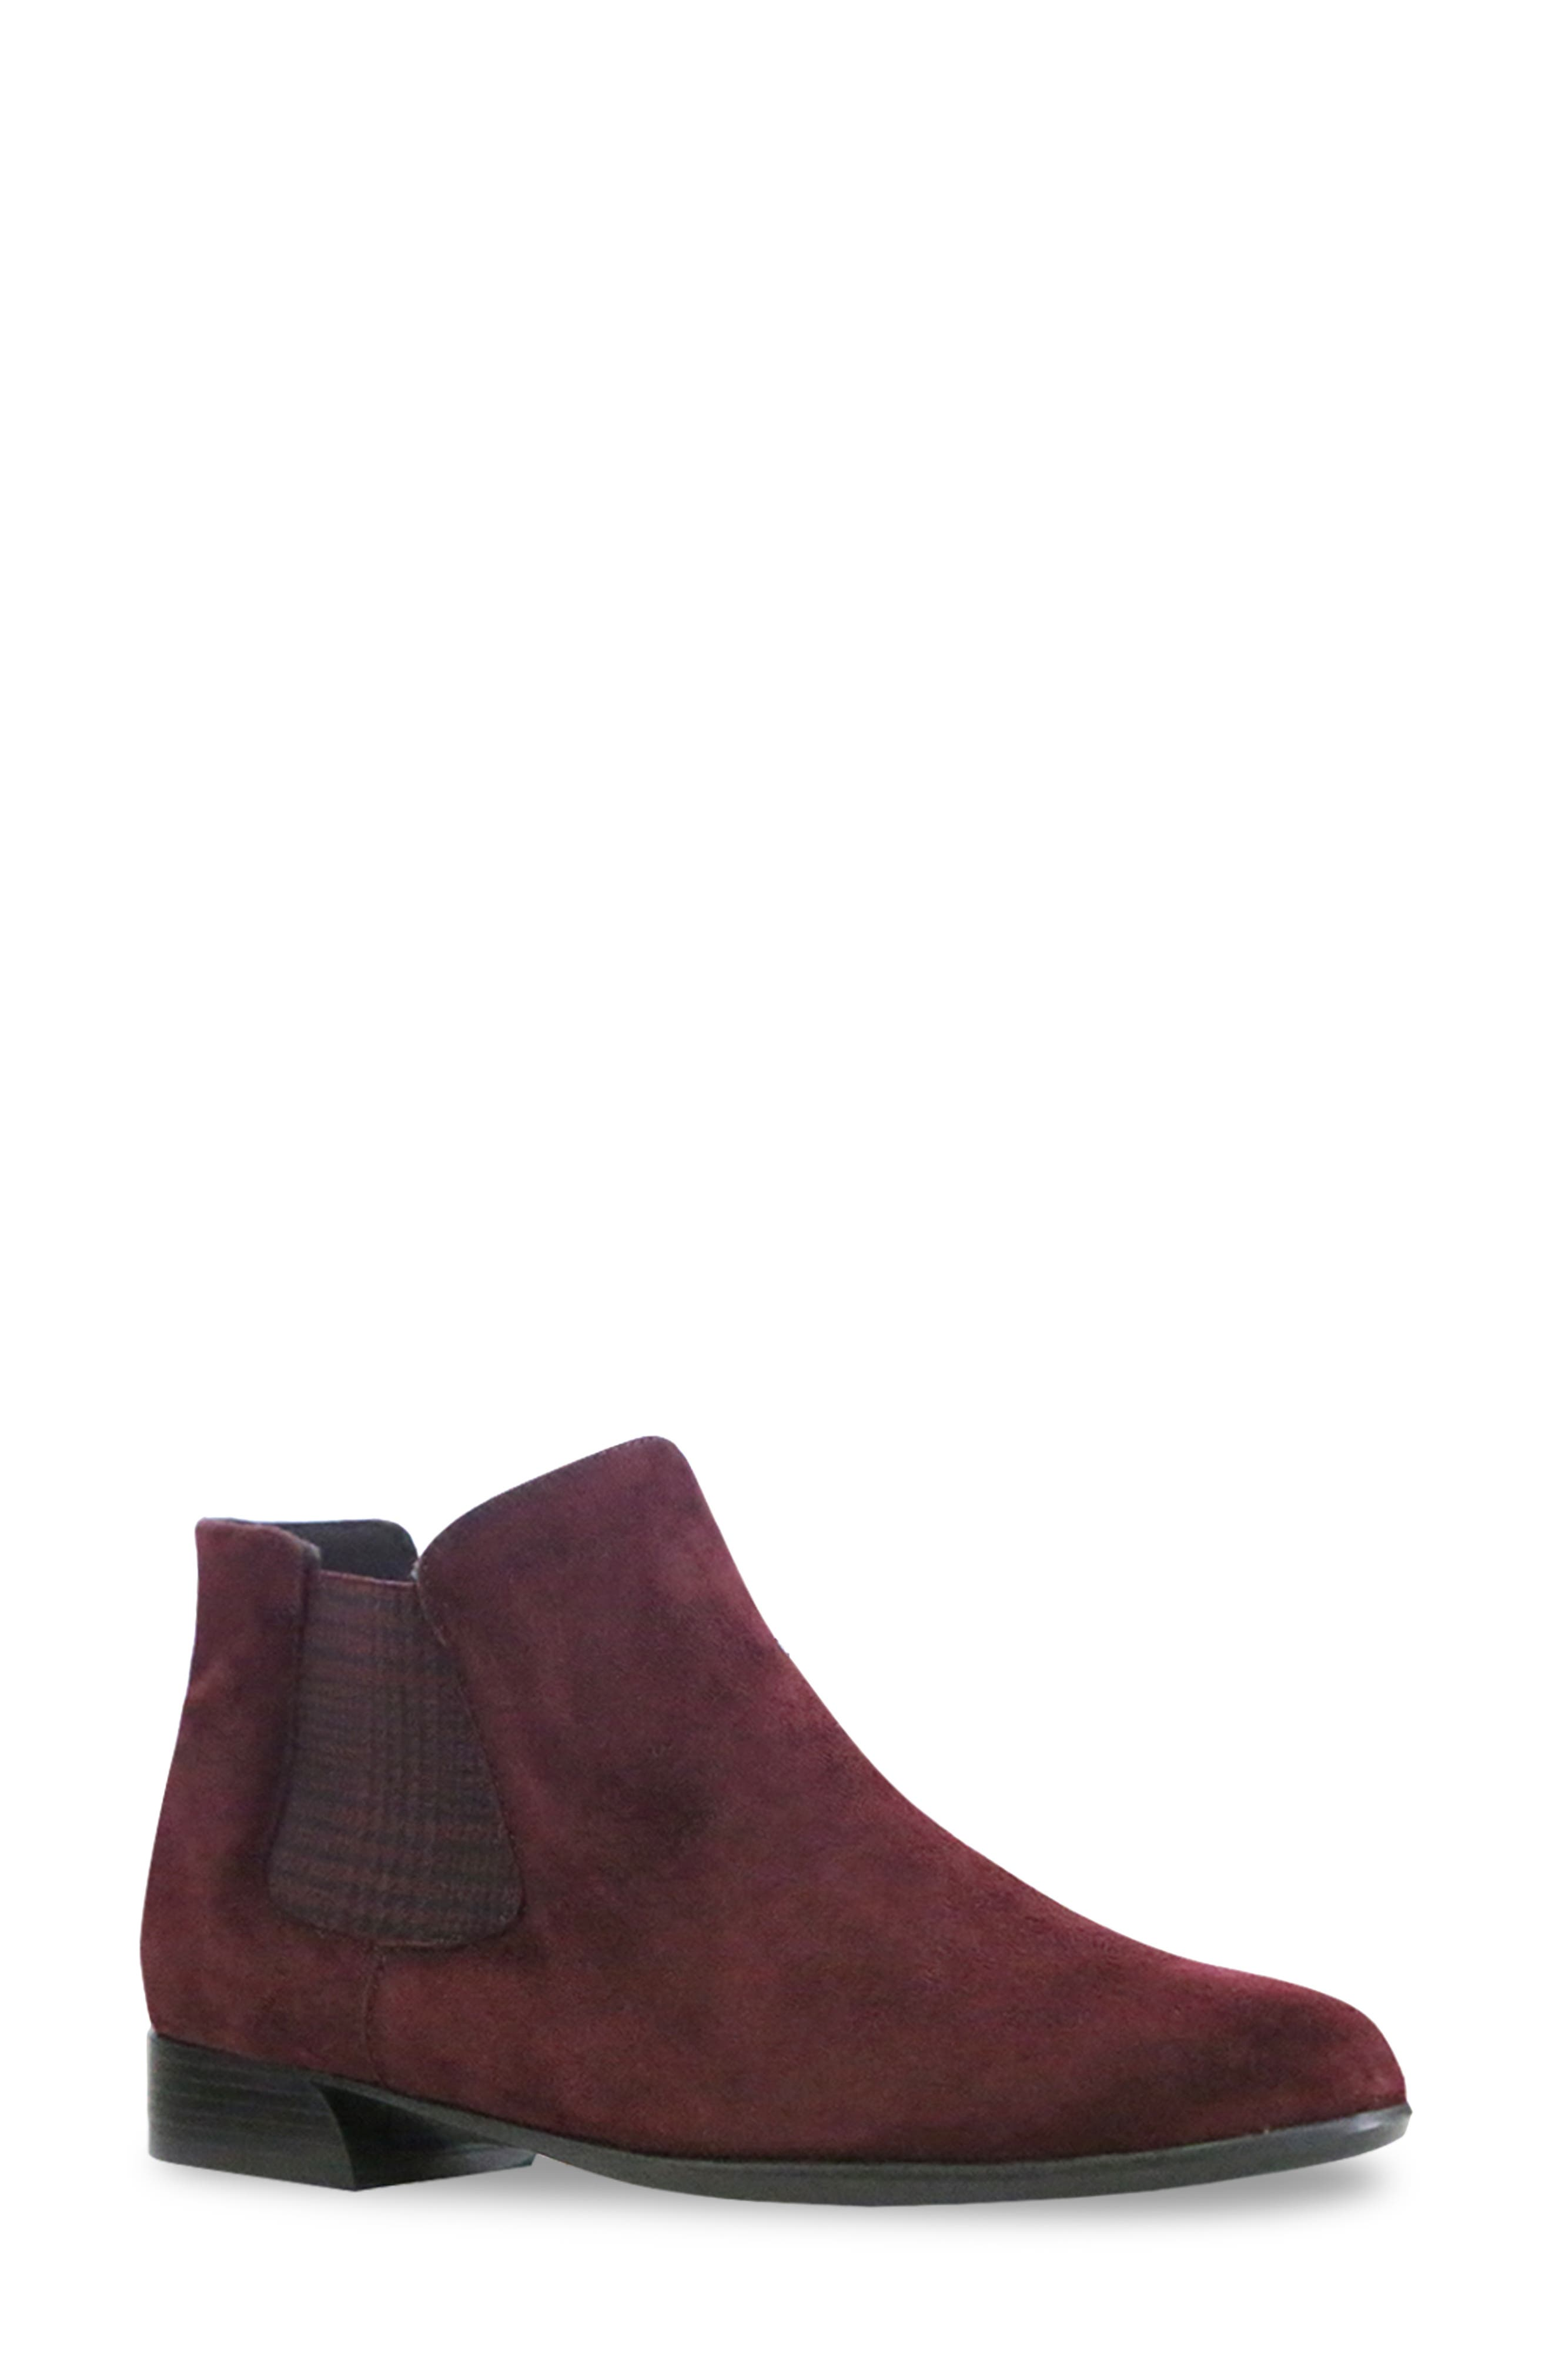 With elastic goring on one side, an easy zip on the other and a low stacked heel, this modern Chelsea boot is the perfect style for around-town wear. Style Name: Munro Cate Chelsea Boot (Women). Style Number: 6066143. Available in stores.